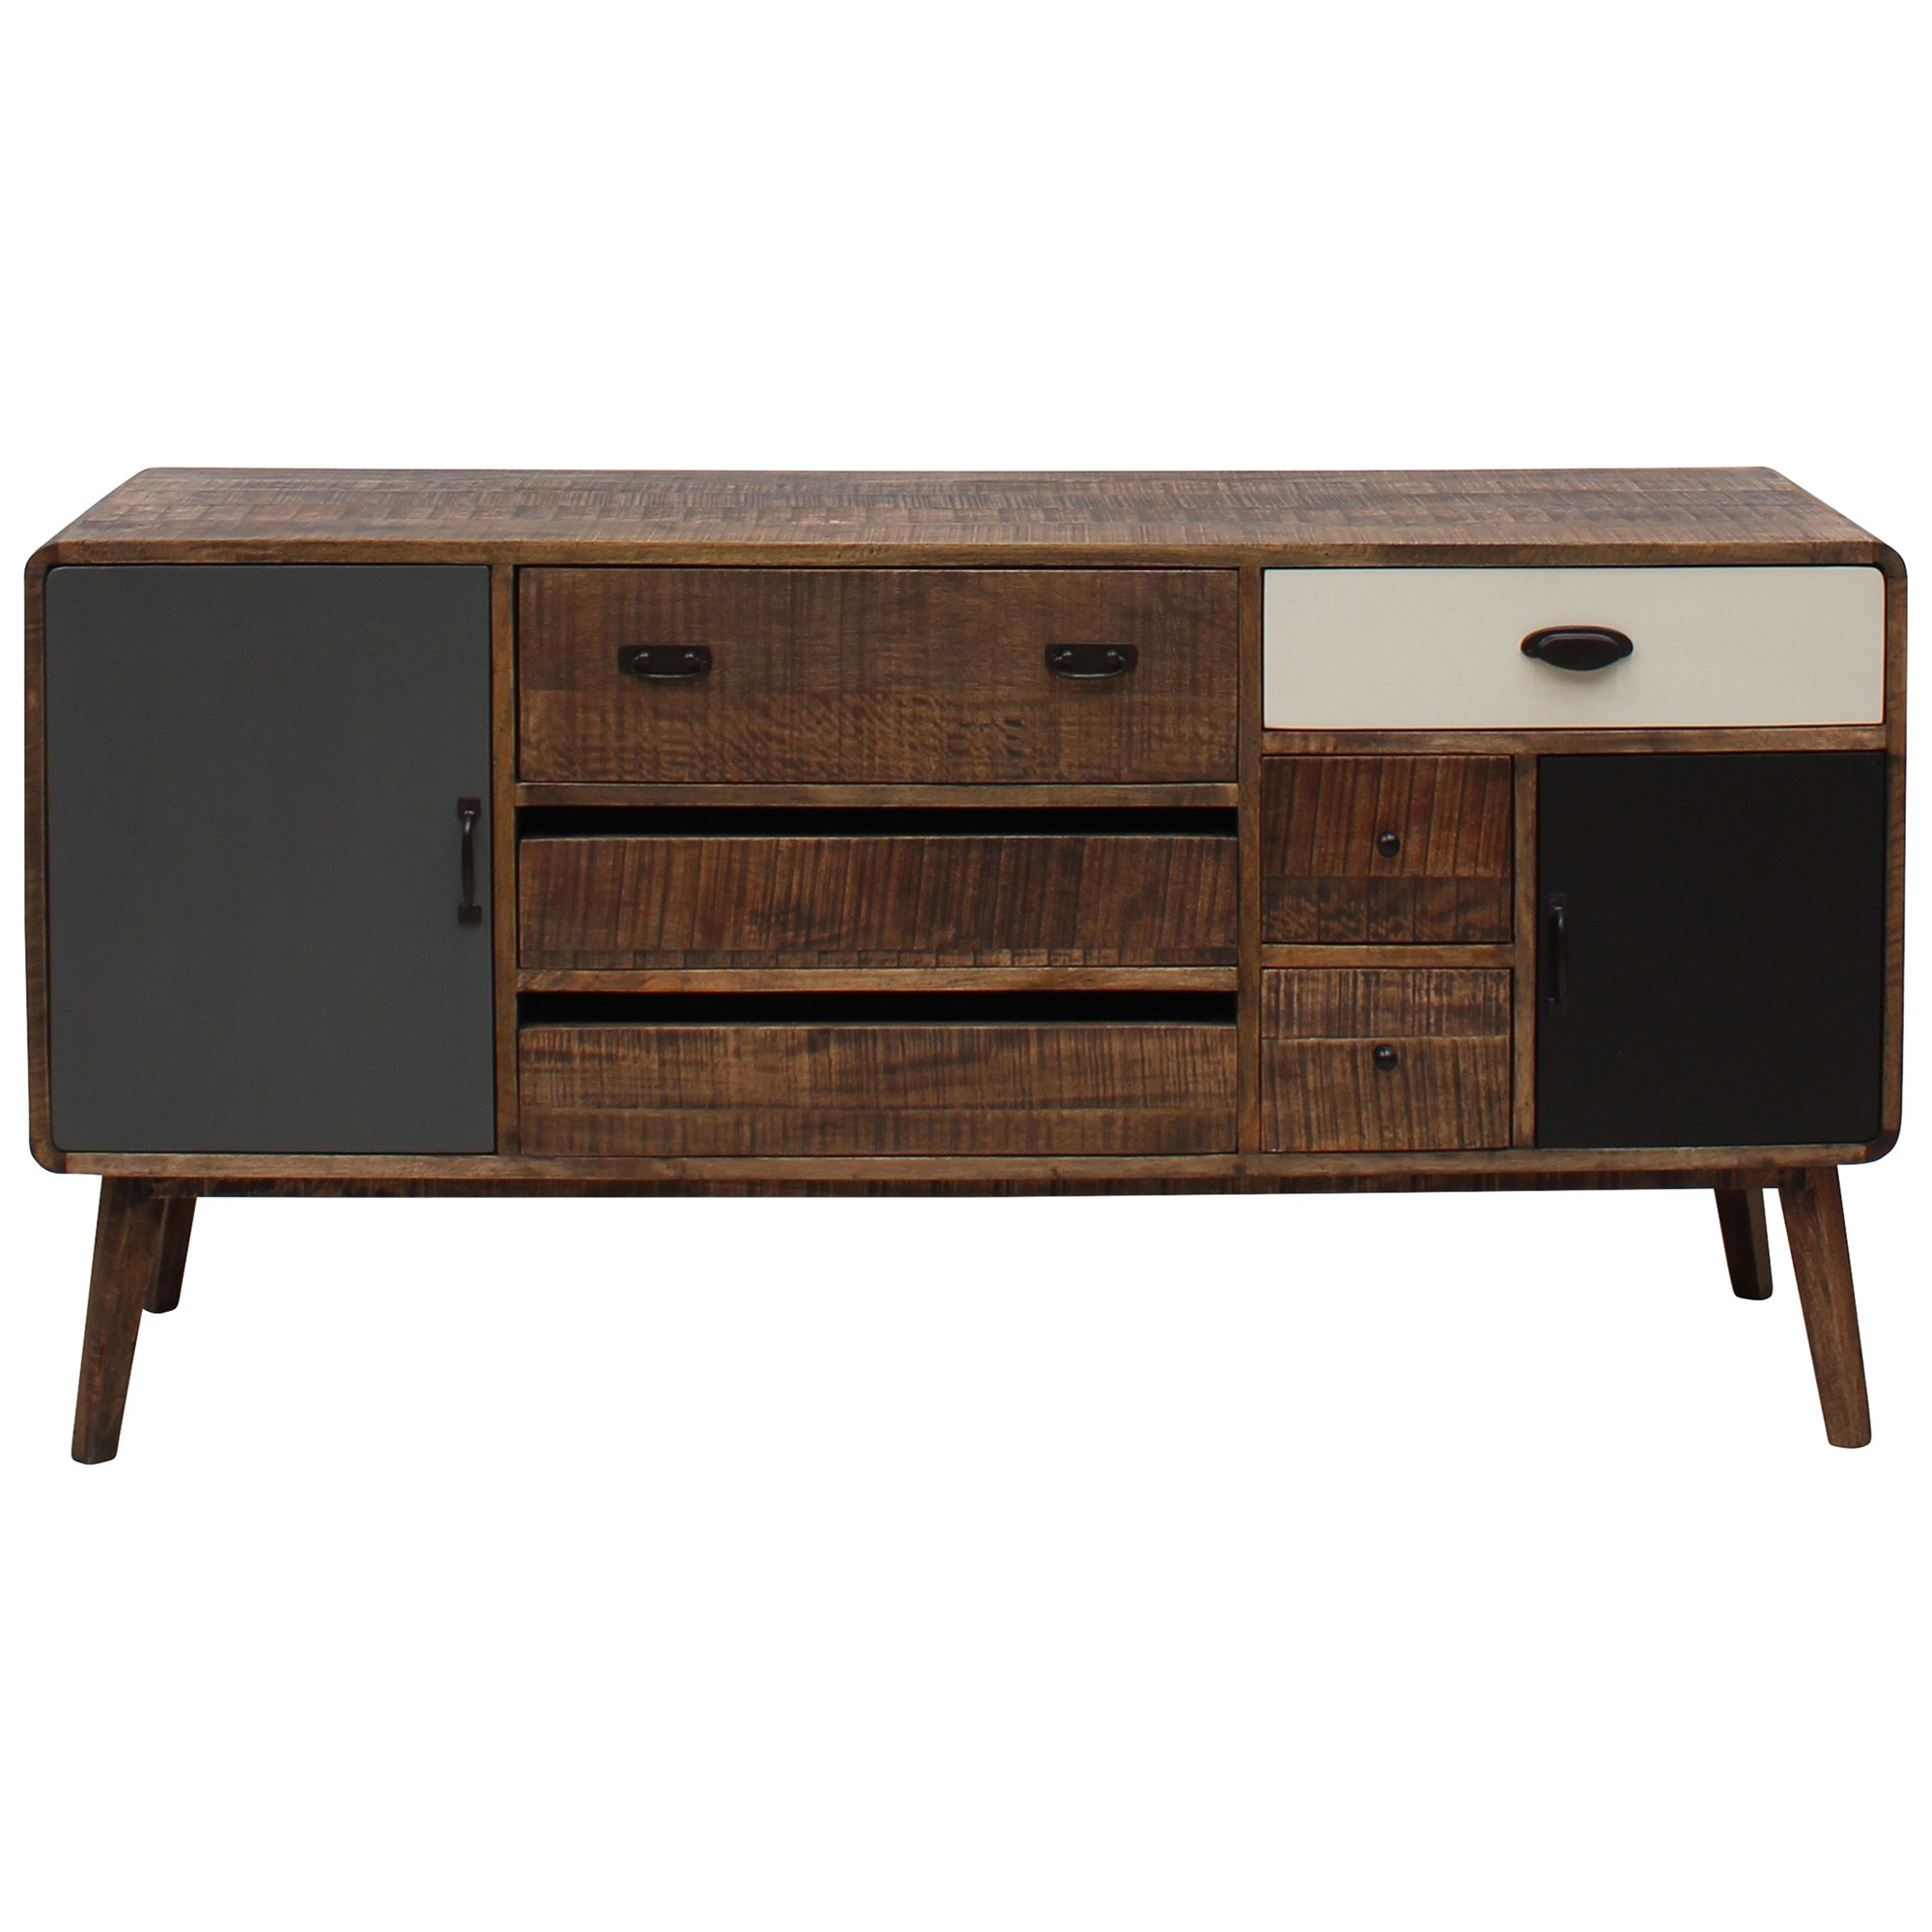 Axminster Hand Crafted Mango Wood Timber Sideboard, 150cm